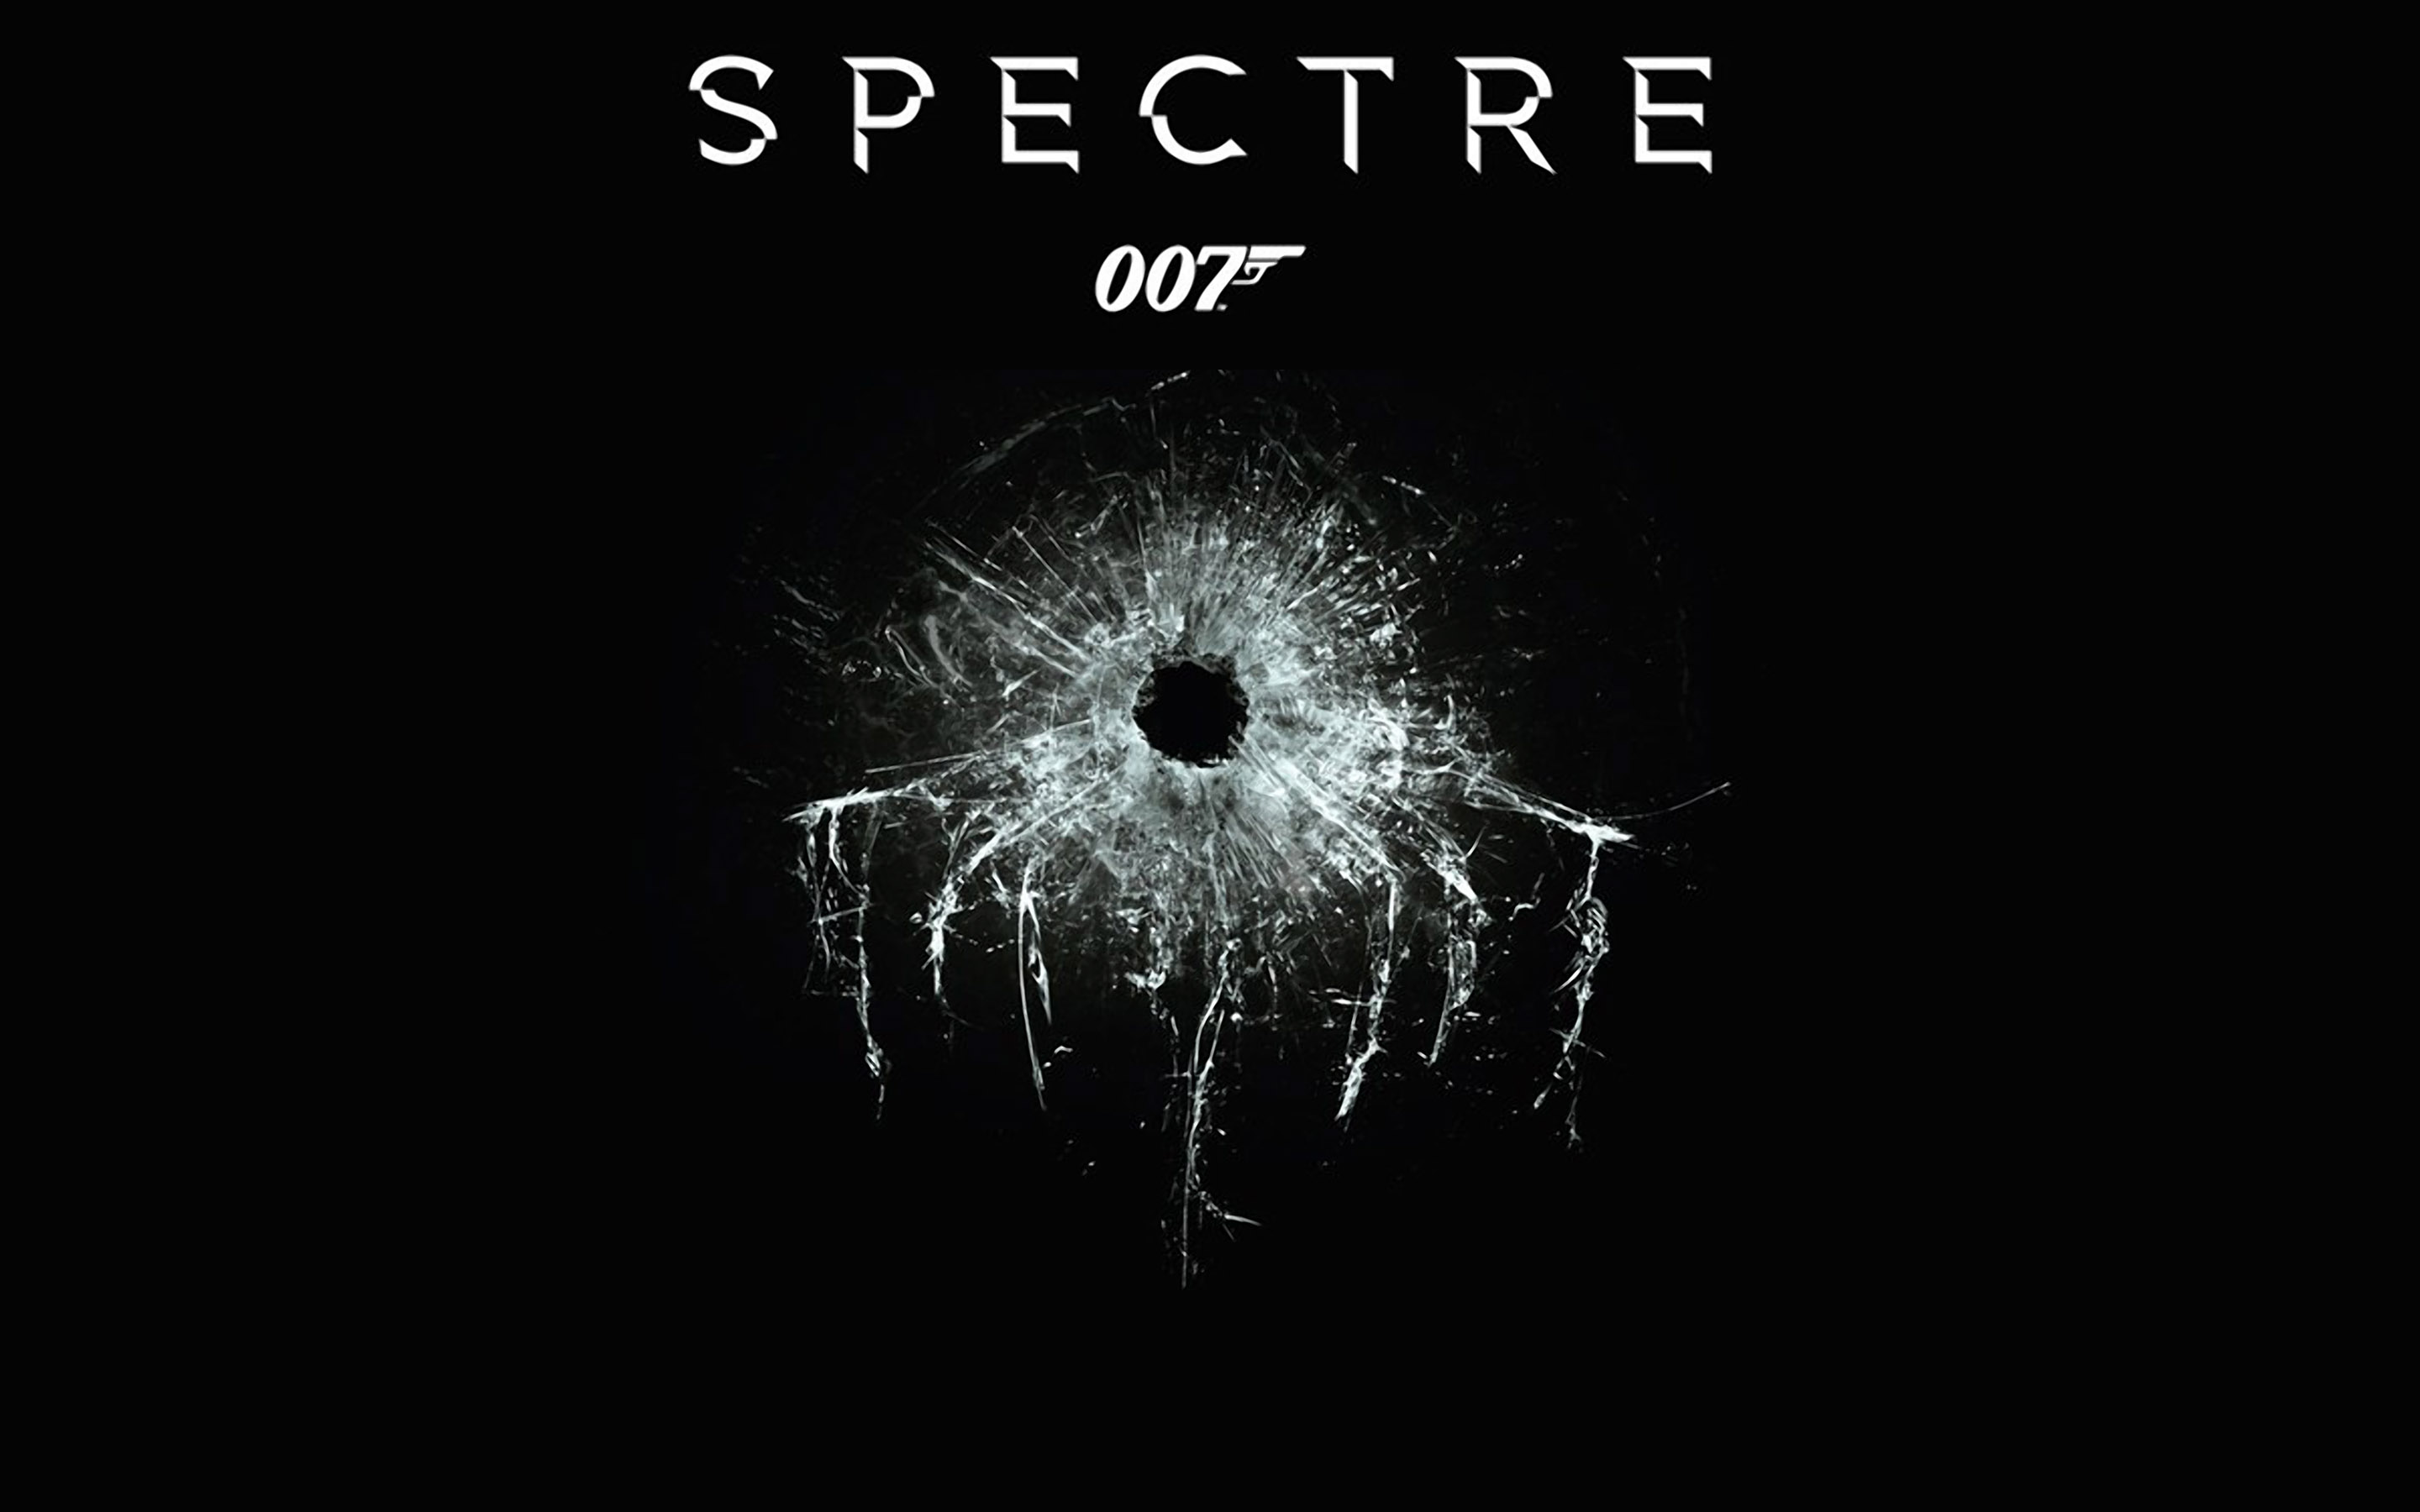 Spectre 2015 James Bond 007 Wallpapers HD Wallpapers 2880x1800